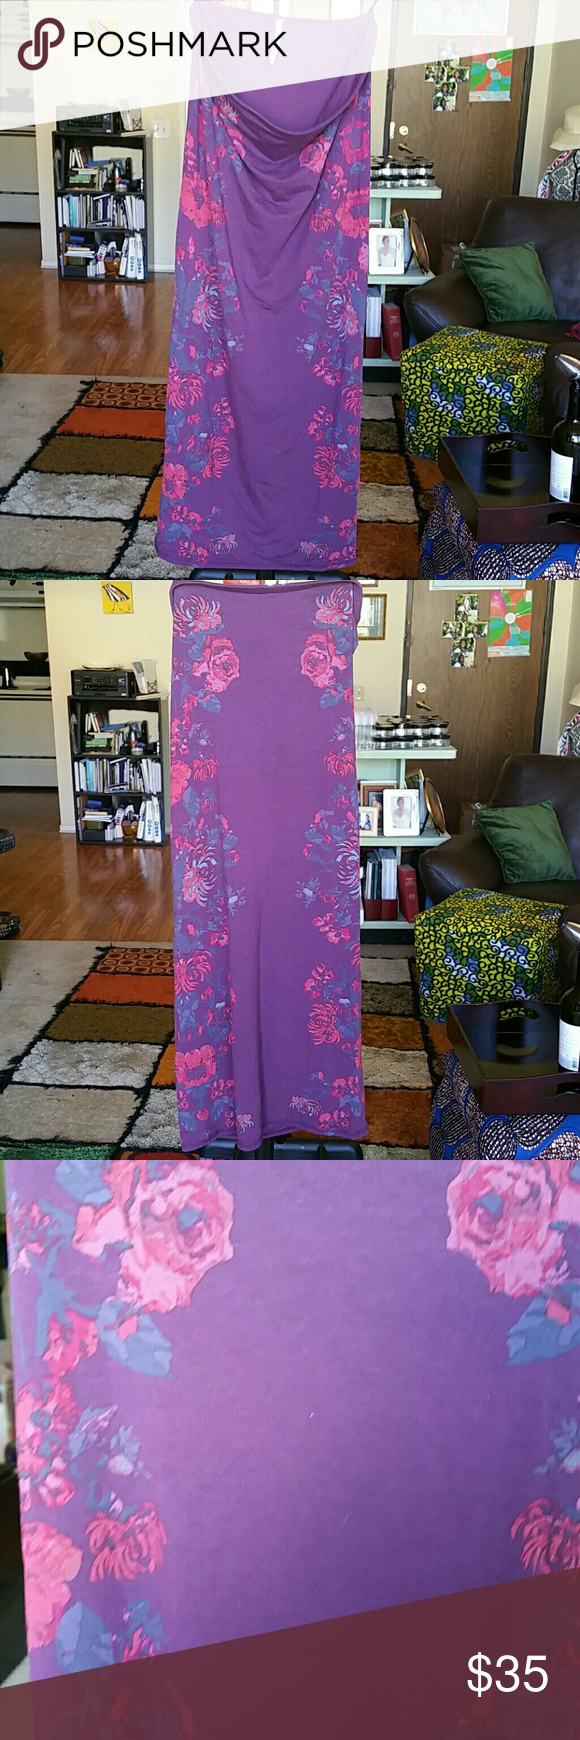 "Free People flower power bodycon tube dress/skirt Can use this as a strapless dress or a skirt. Up to you to decide how to use this 32"" long beauty! Width is 14"" across, relaxed. Material is rayon/spandex mix. Color is a burgundy/merlot color. Free People Dresses"